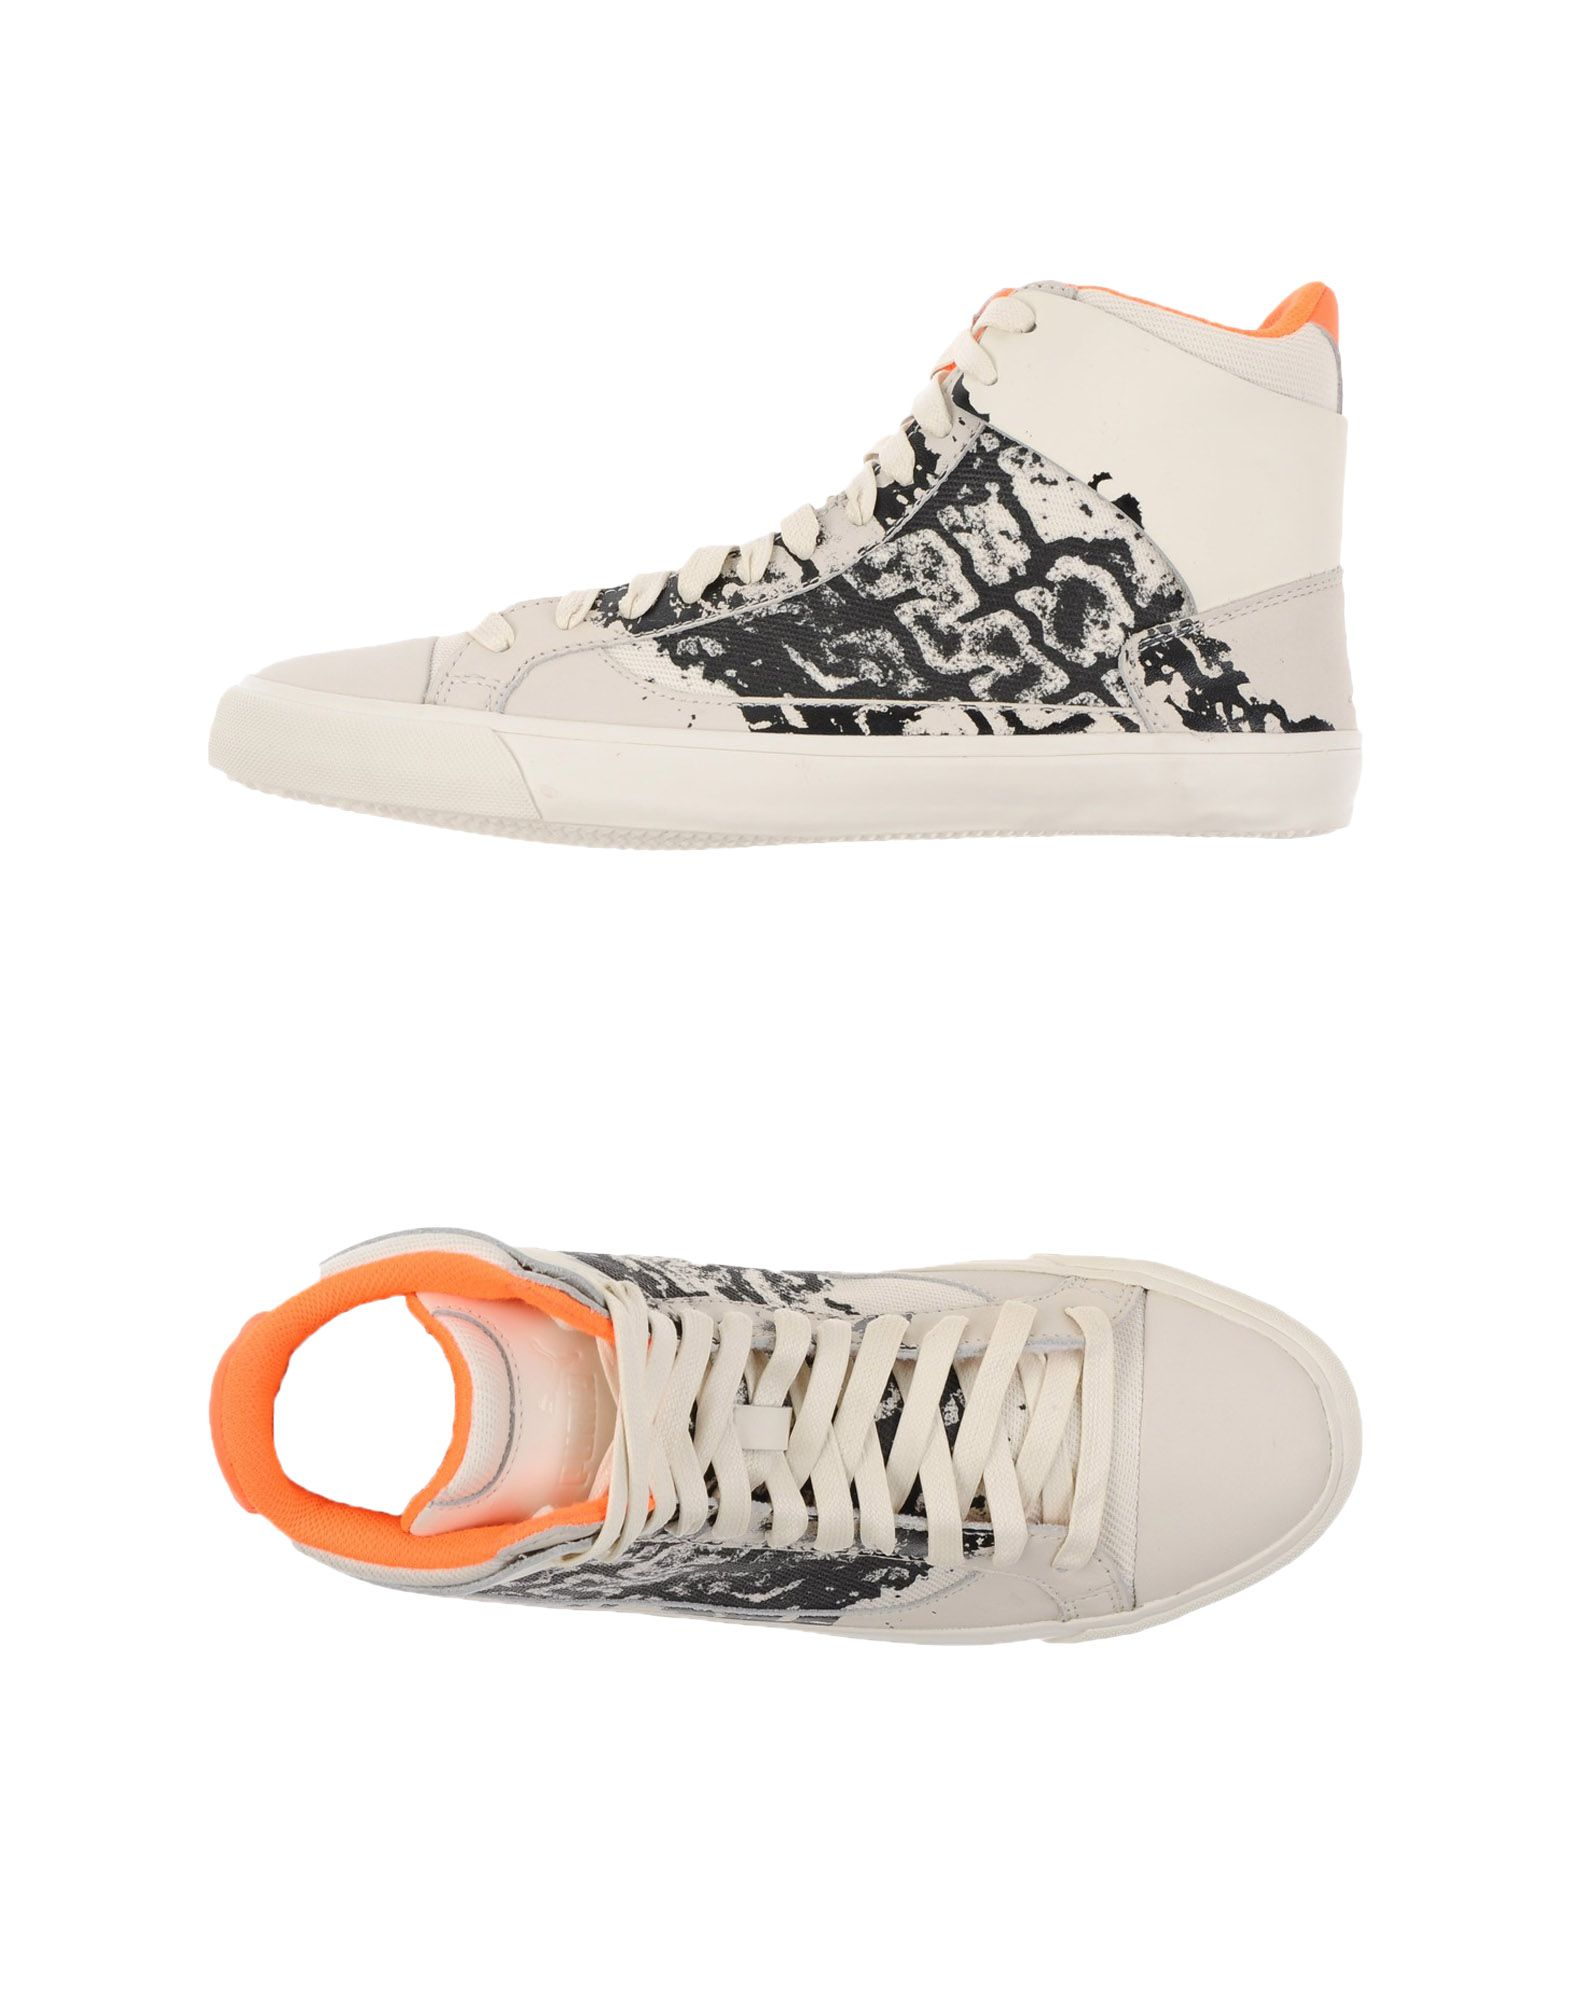 Mcq Puma Sneakers - Women Mcq  Puma Sneakers online on  Mcq United Kingdom - 44893315LO d38203